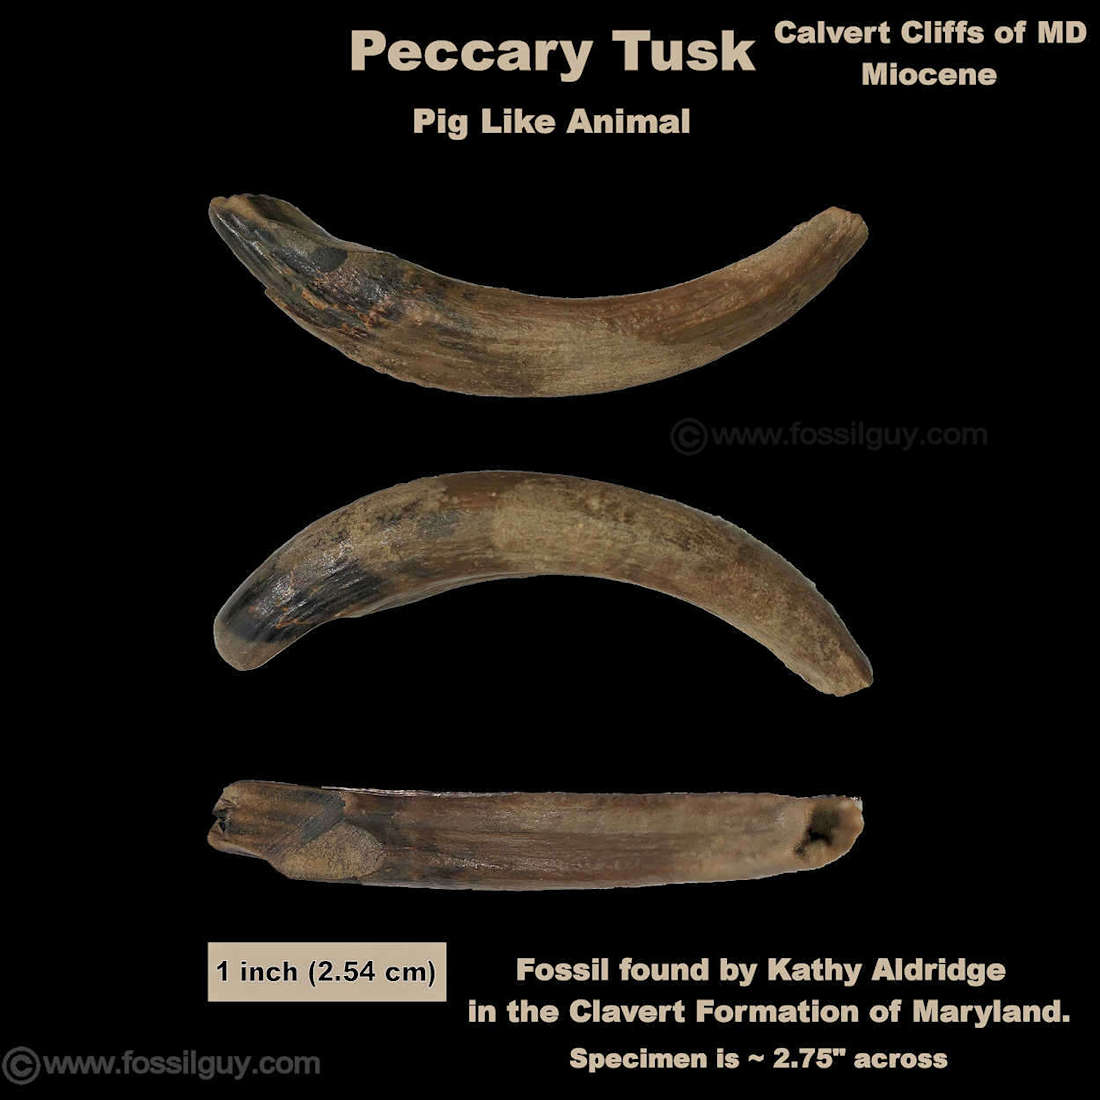 Peccary tusk fossil from the Calvert Cliffs of Maryland